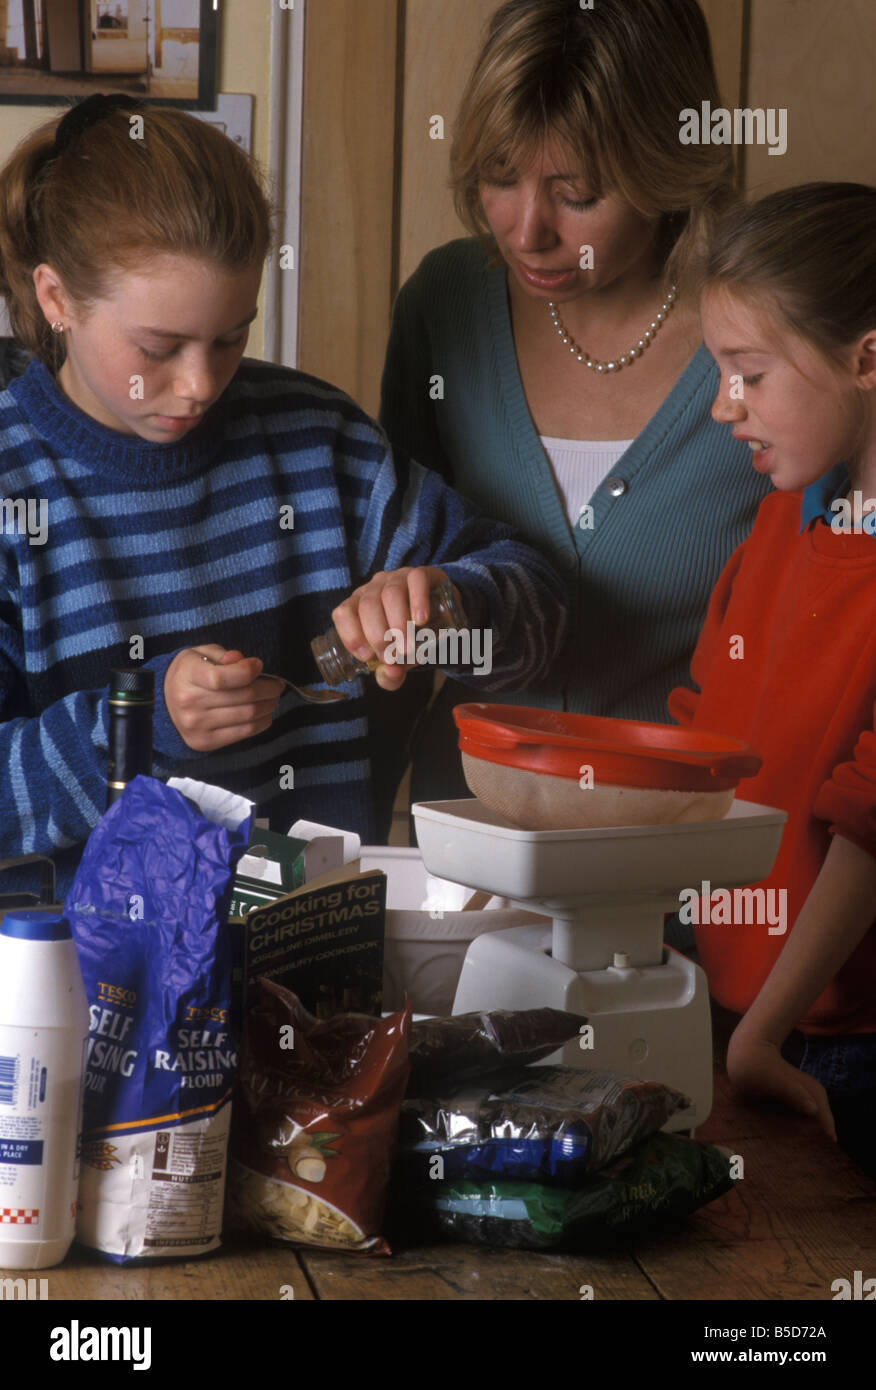 mother and daughters cooking a Christmas cake - Stock Image